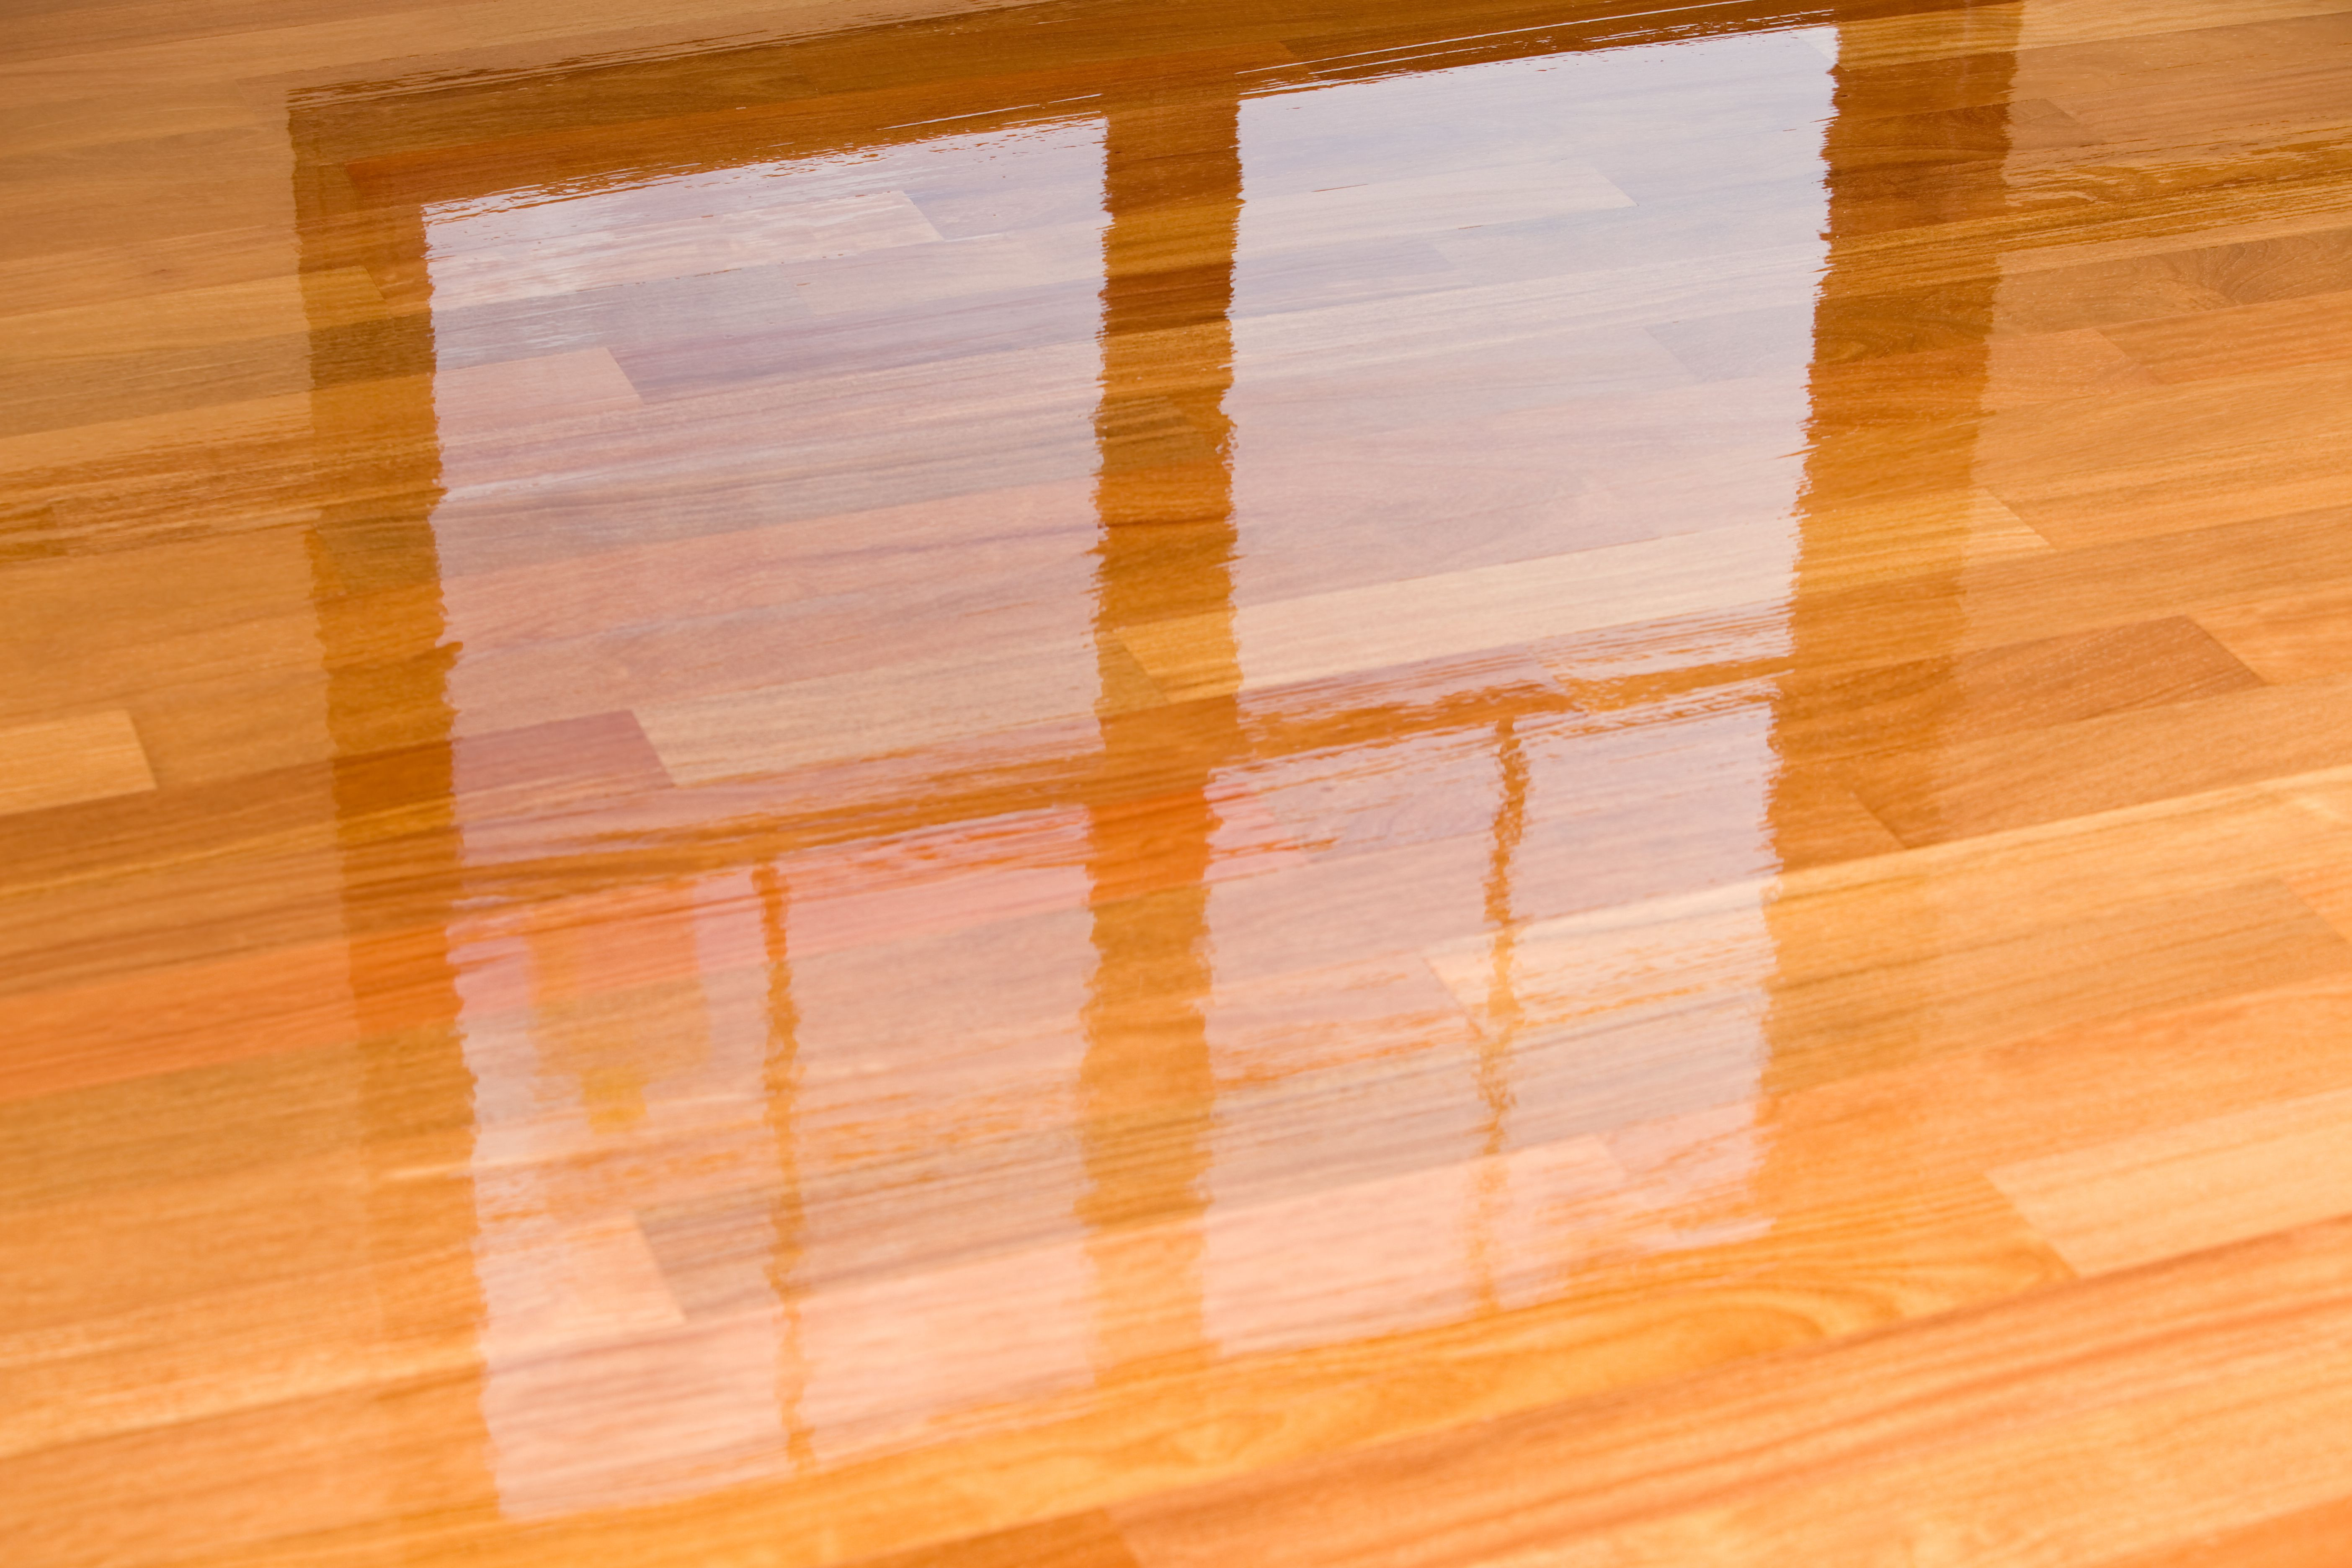 hardwood floor refinishing bend oregon of guide to laminate flooring water and damage repair regarding wet polyurethane on new hardwood floor with window reflection 183846705 582e34da3df78c6f6a403968